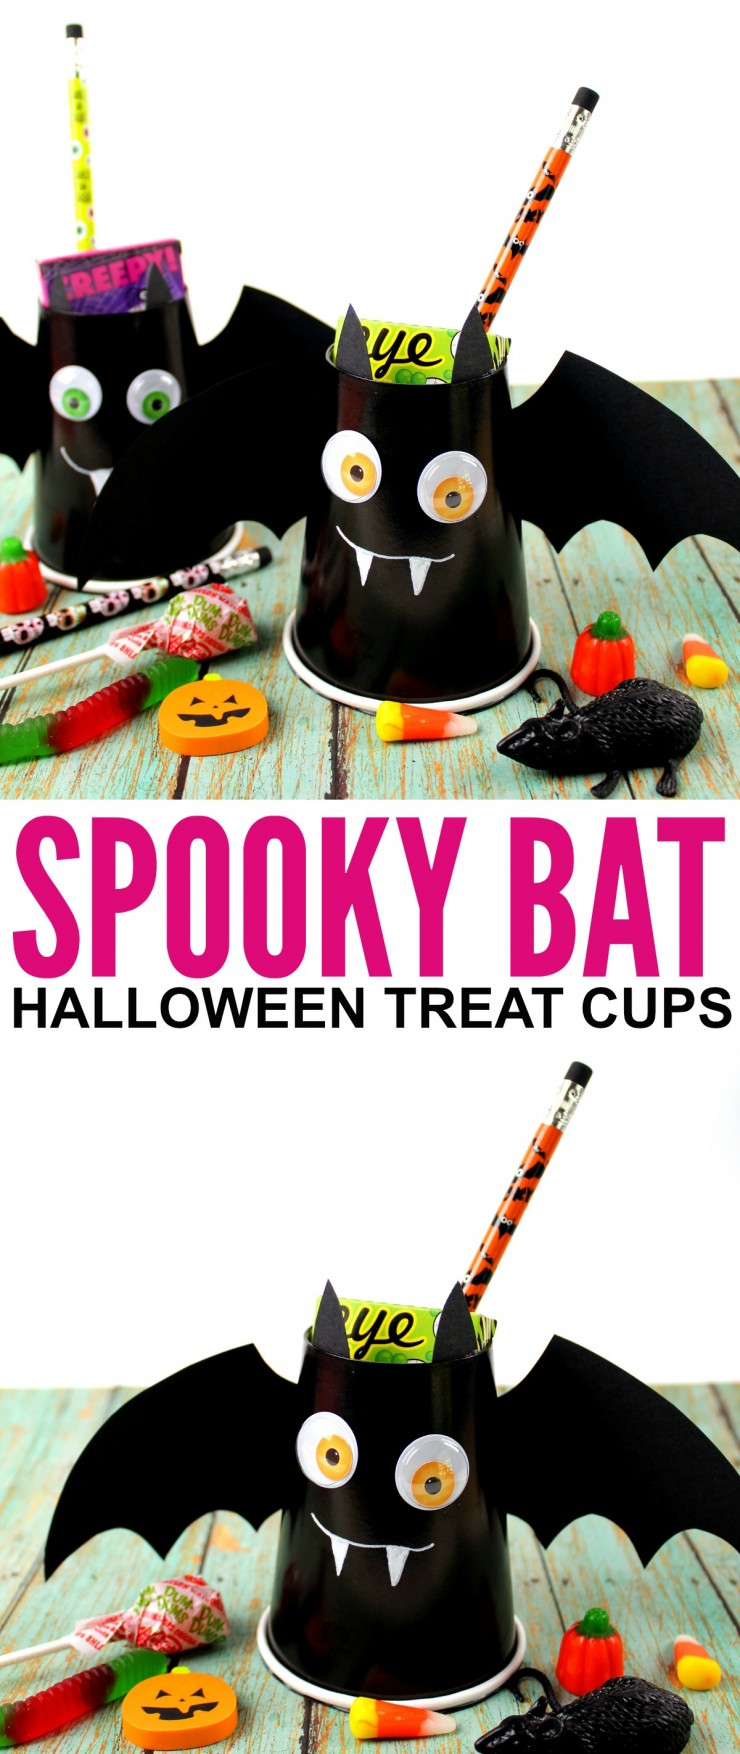 This Bat Halloween Treat Cups kids craft is a great way to celebrate the holiday - they are a fun little Halloween craft kids will enjoy being creative with. They are great for Halloween party favours!